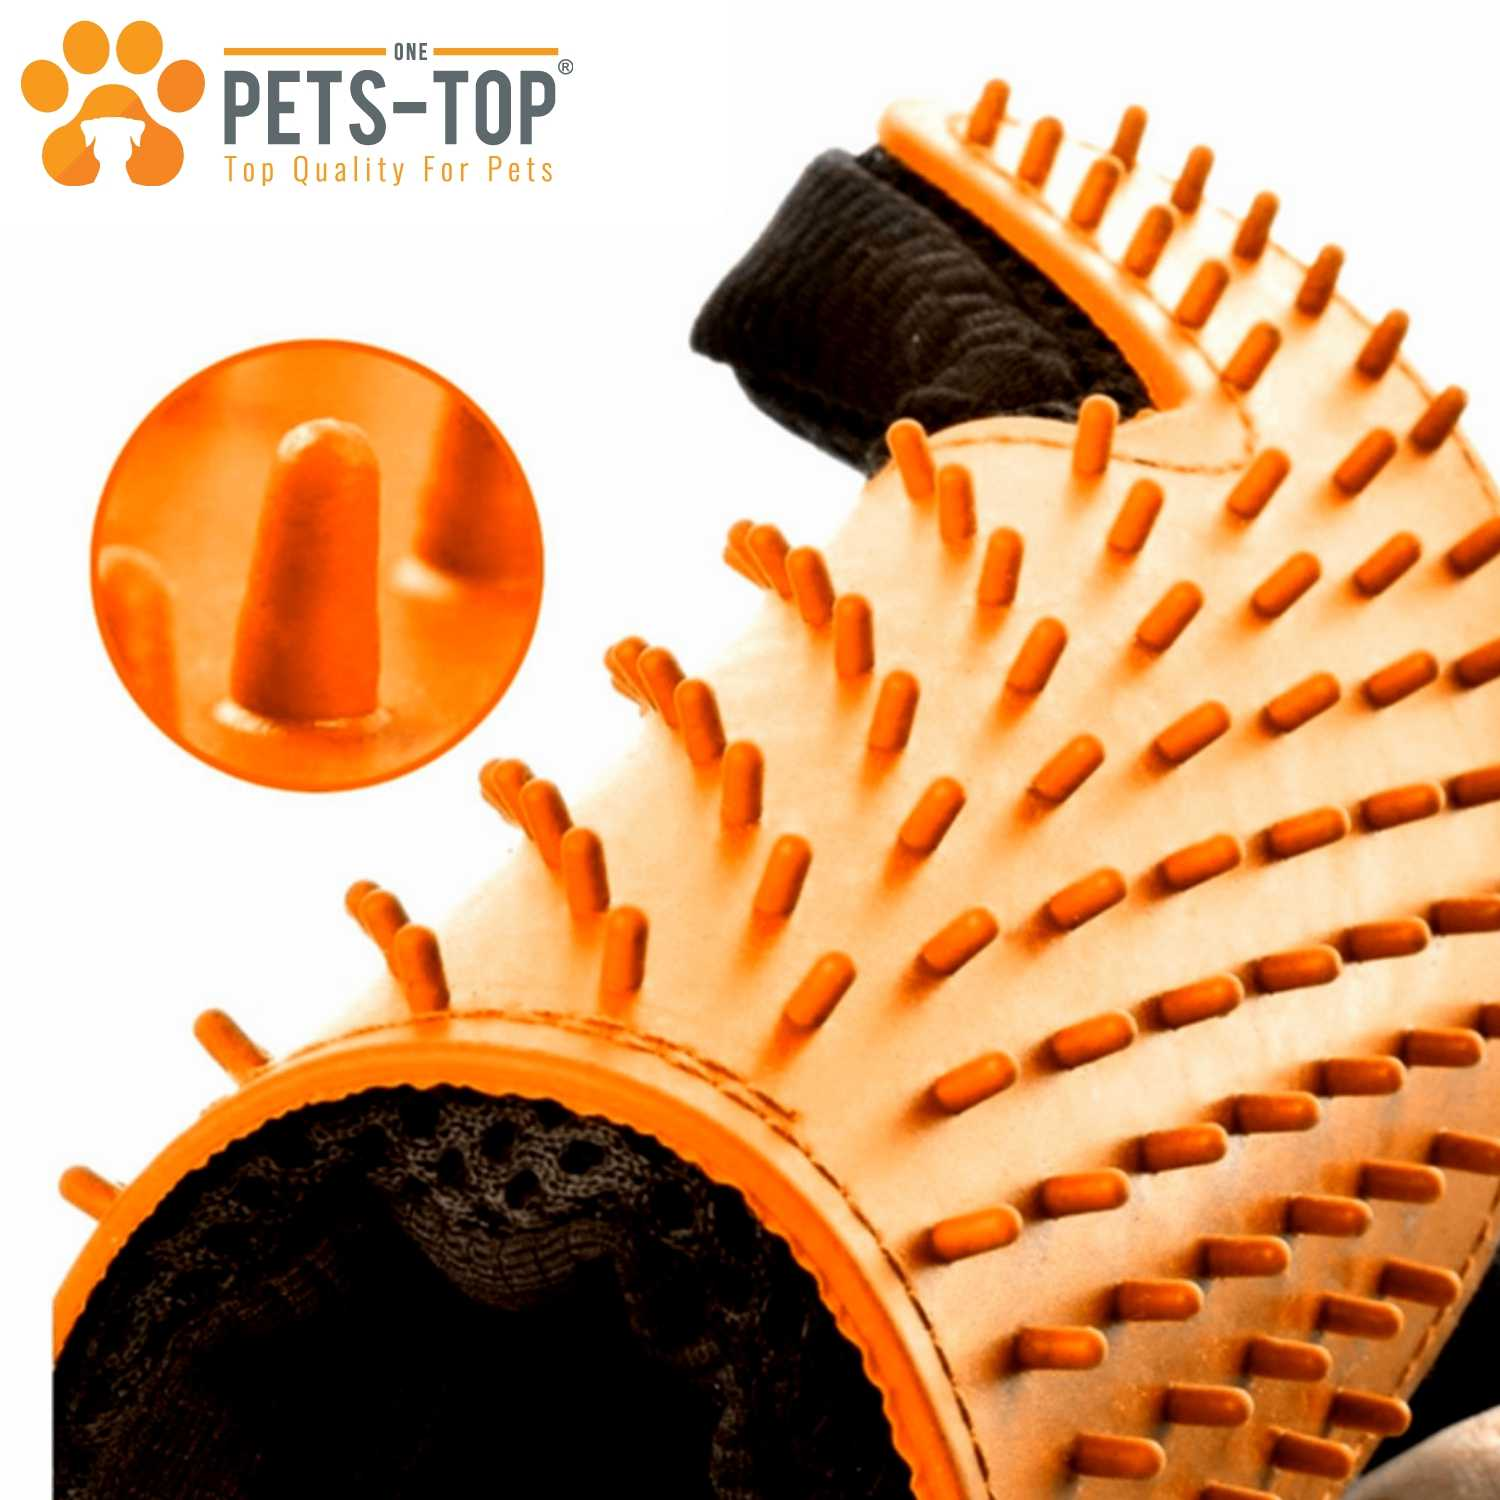 Gant Brosse Poil Chien Chat One Pets Top